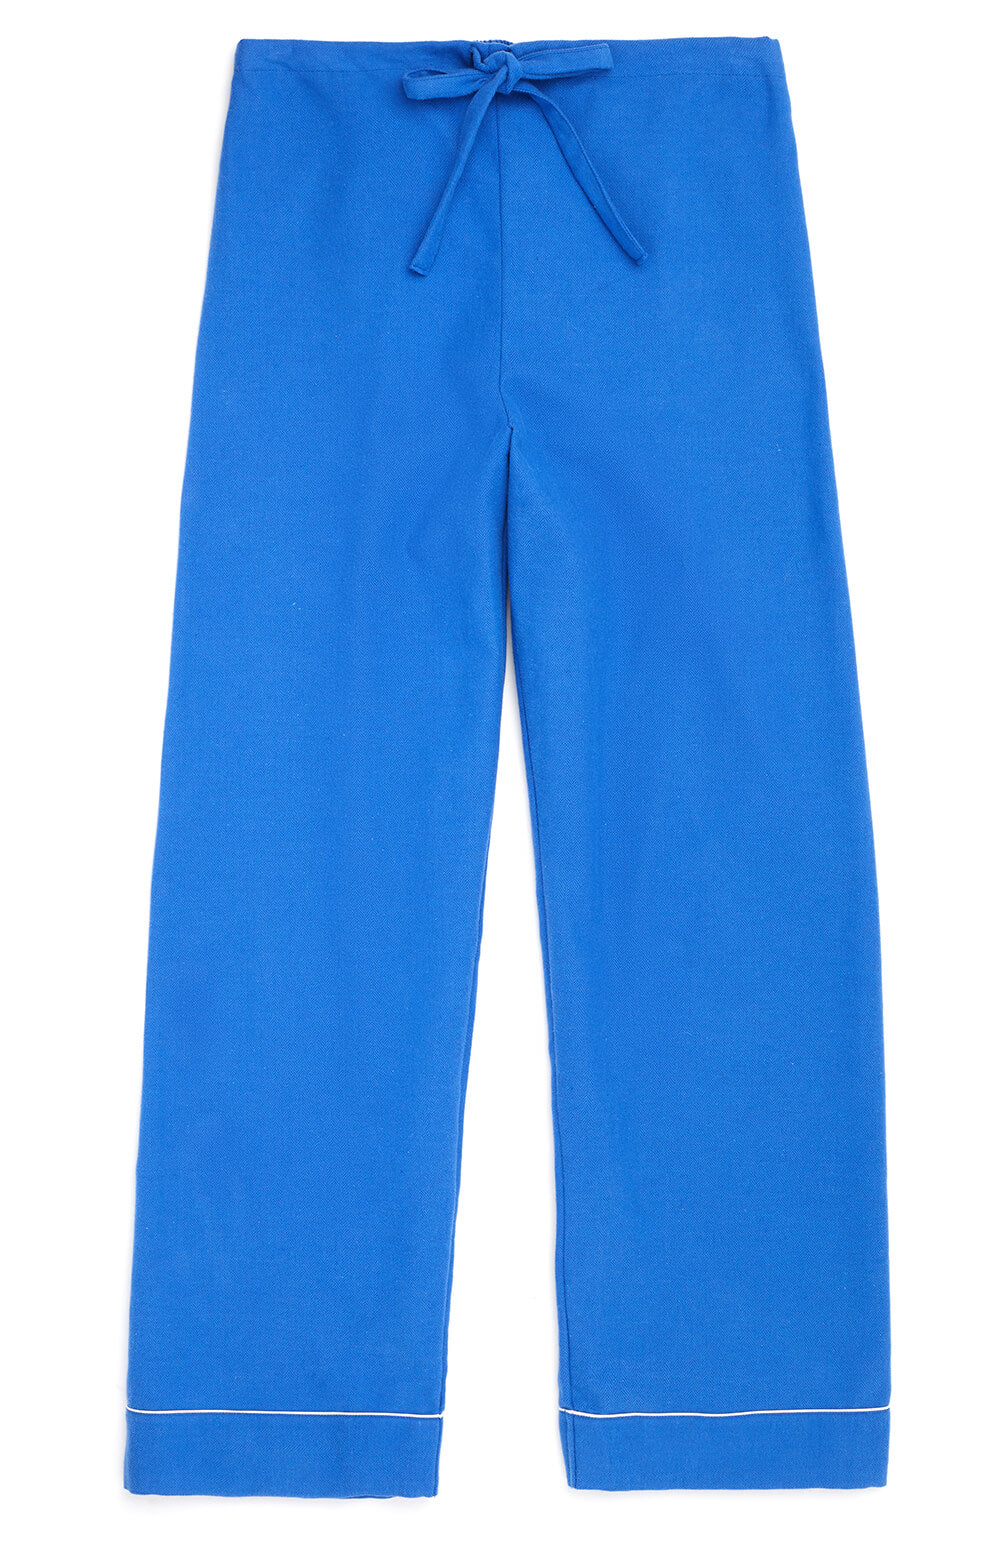 Brushed Tartan Pyjama Trousers (tltf) - Bright Blue | Bonsoir of London